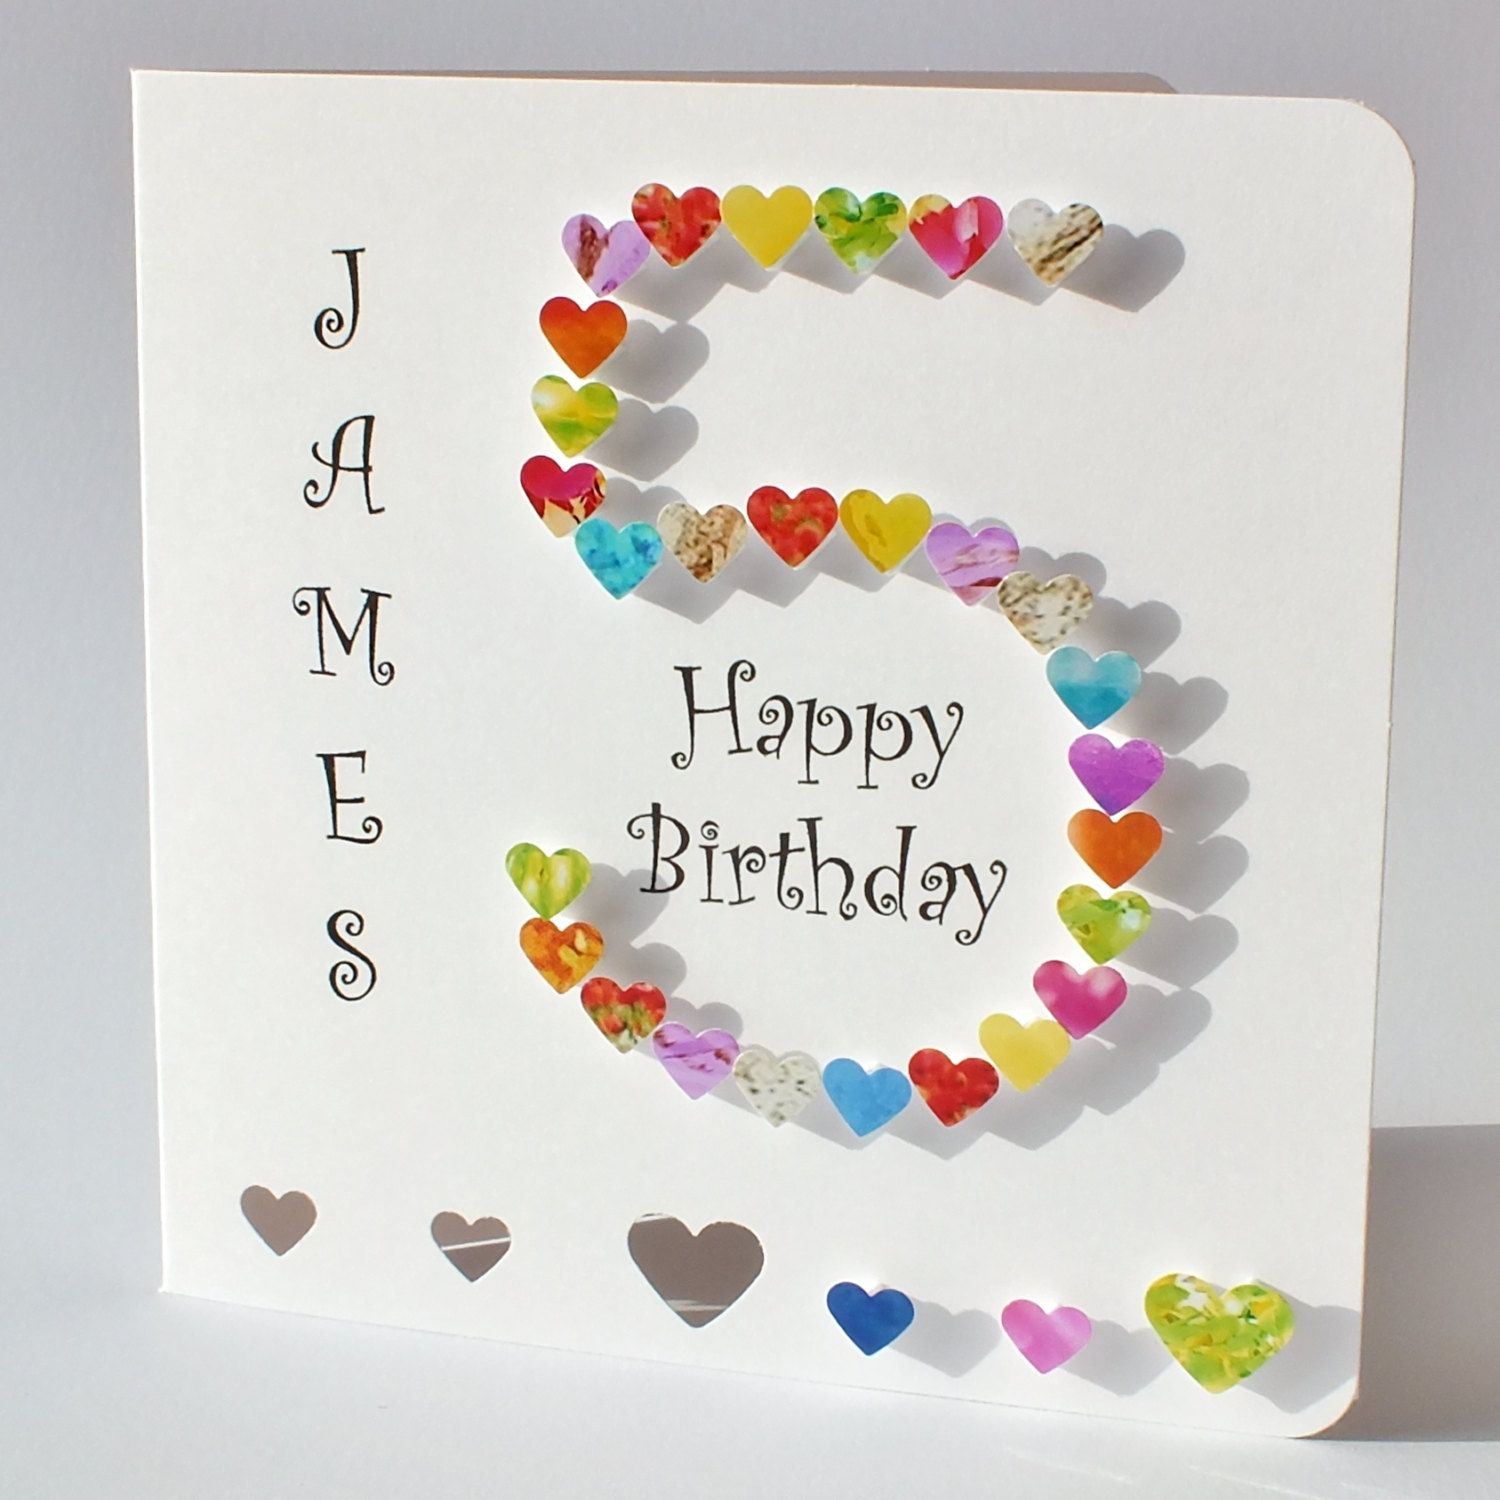 5th birthday card custom personalised age 5 card handmade card handmade card birthday card by cardsbygaynor on etsy kristyandbryce Images